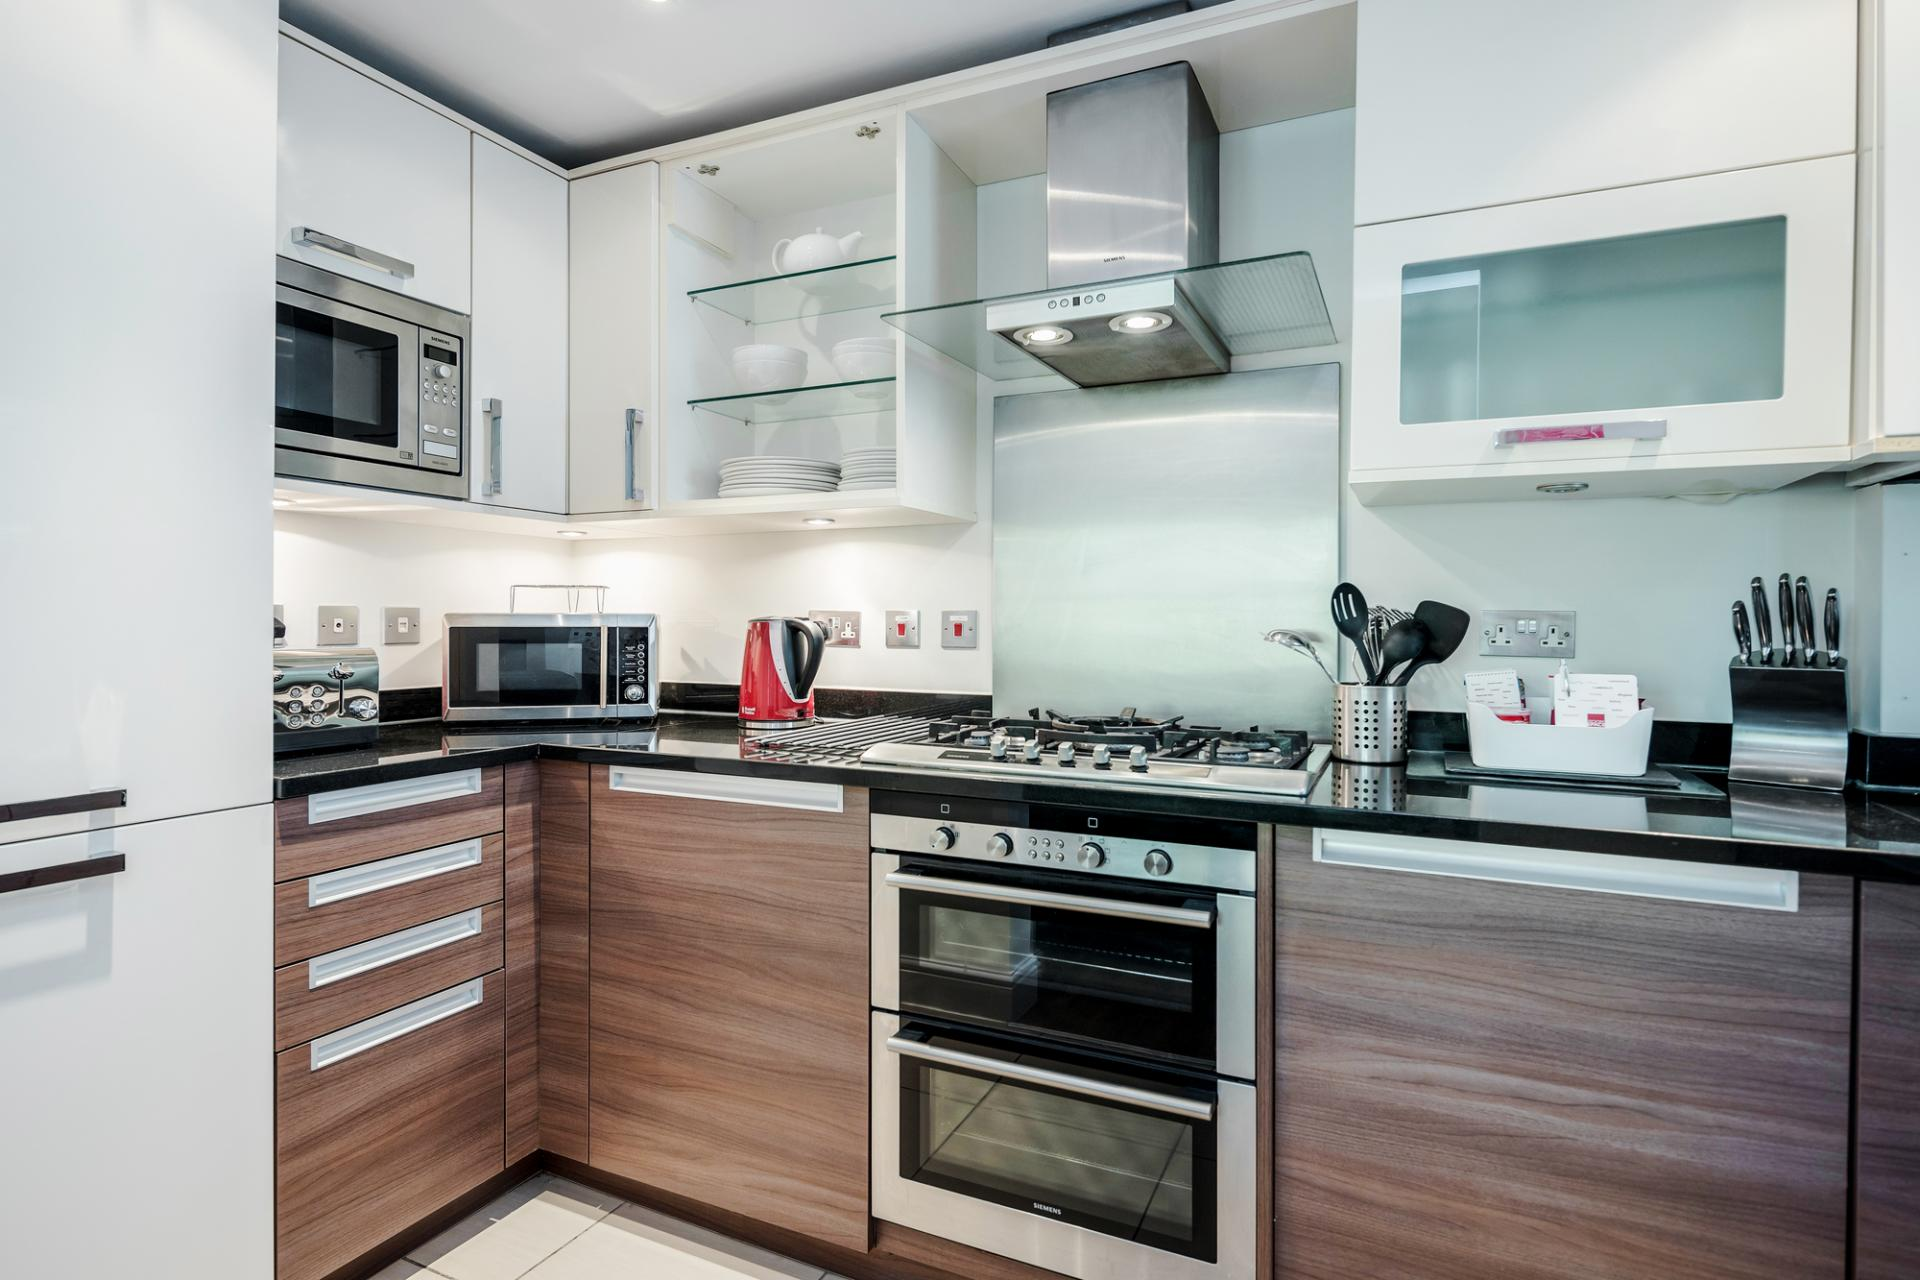 Kitchen at Little Orchard Place Apartments, Centre, Esher